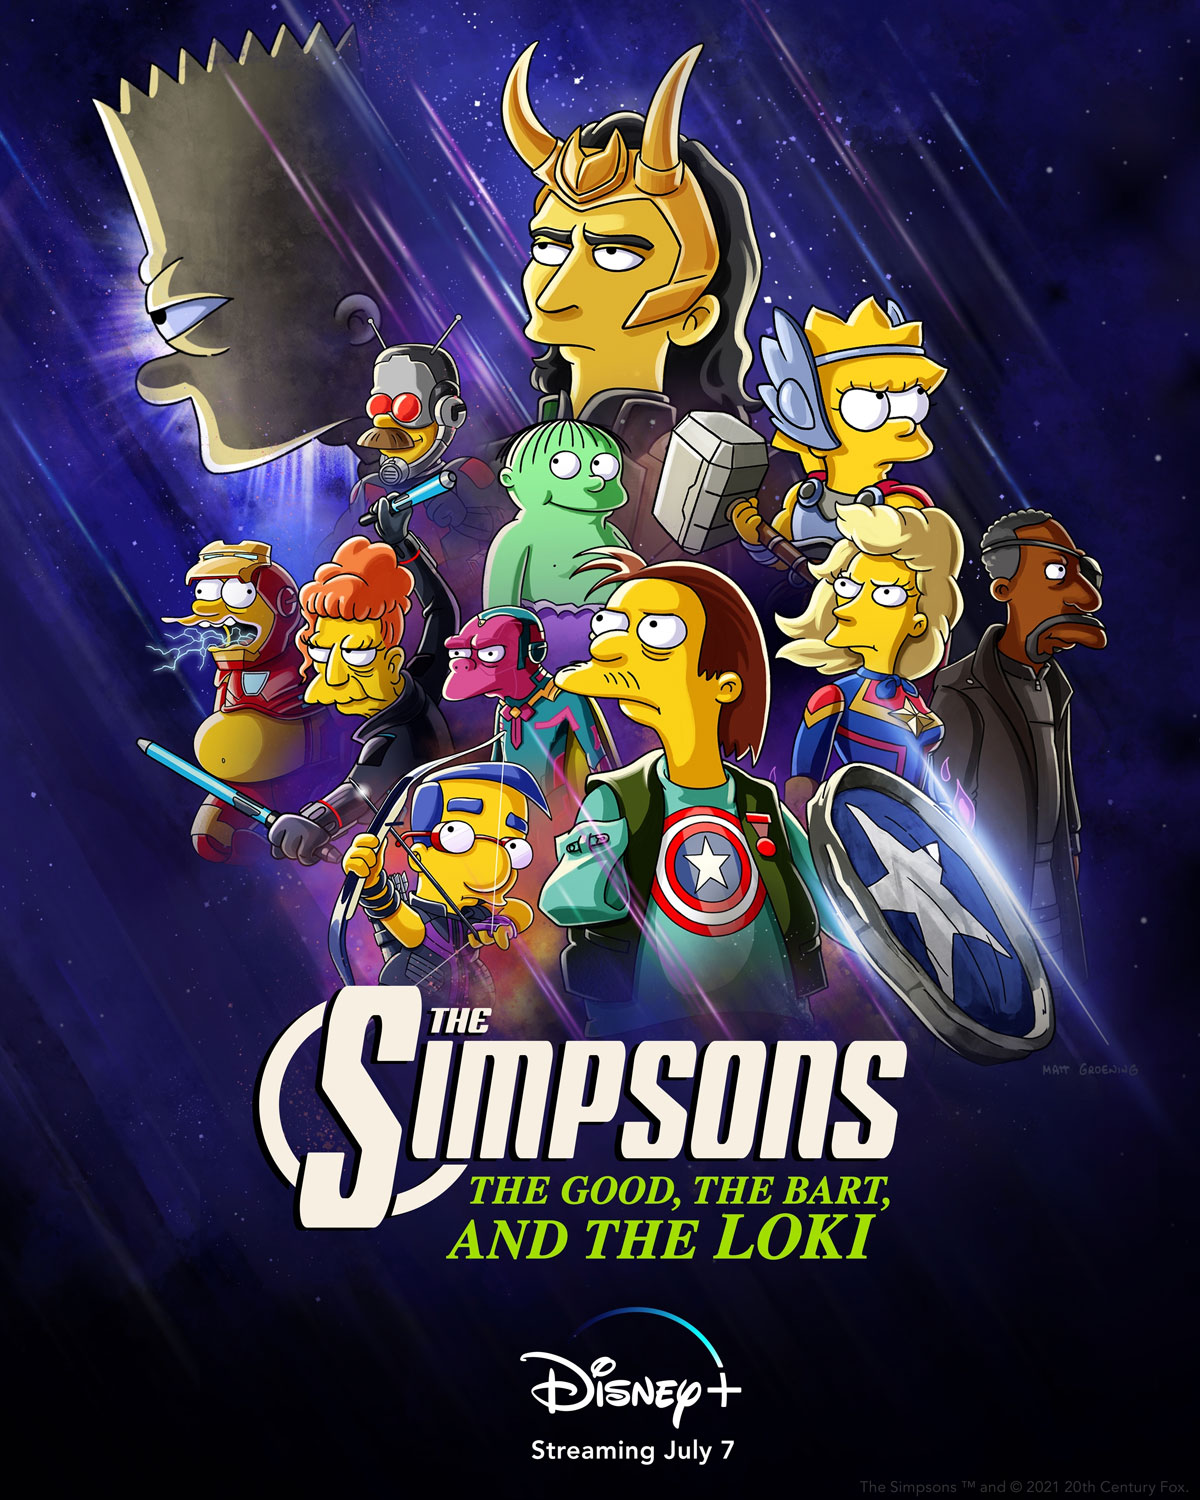 The Simpsons The Good, The Bart and The Loki poster